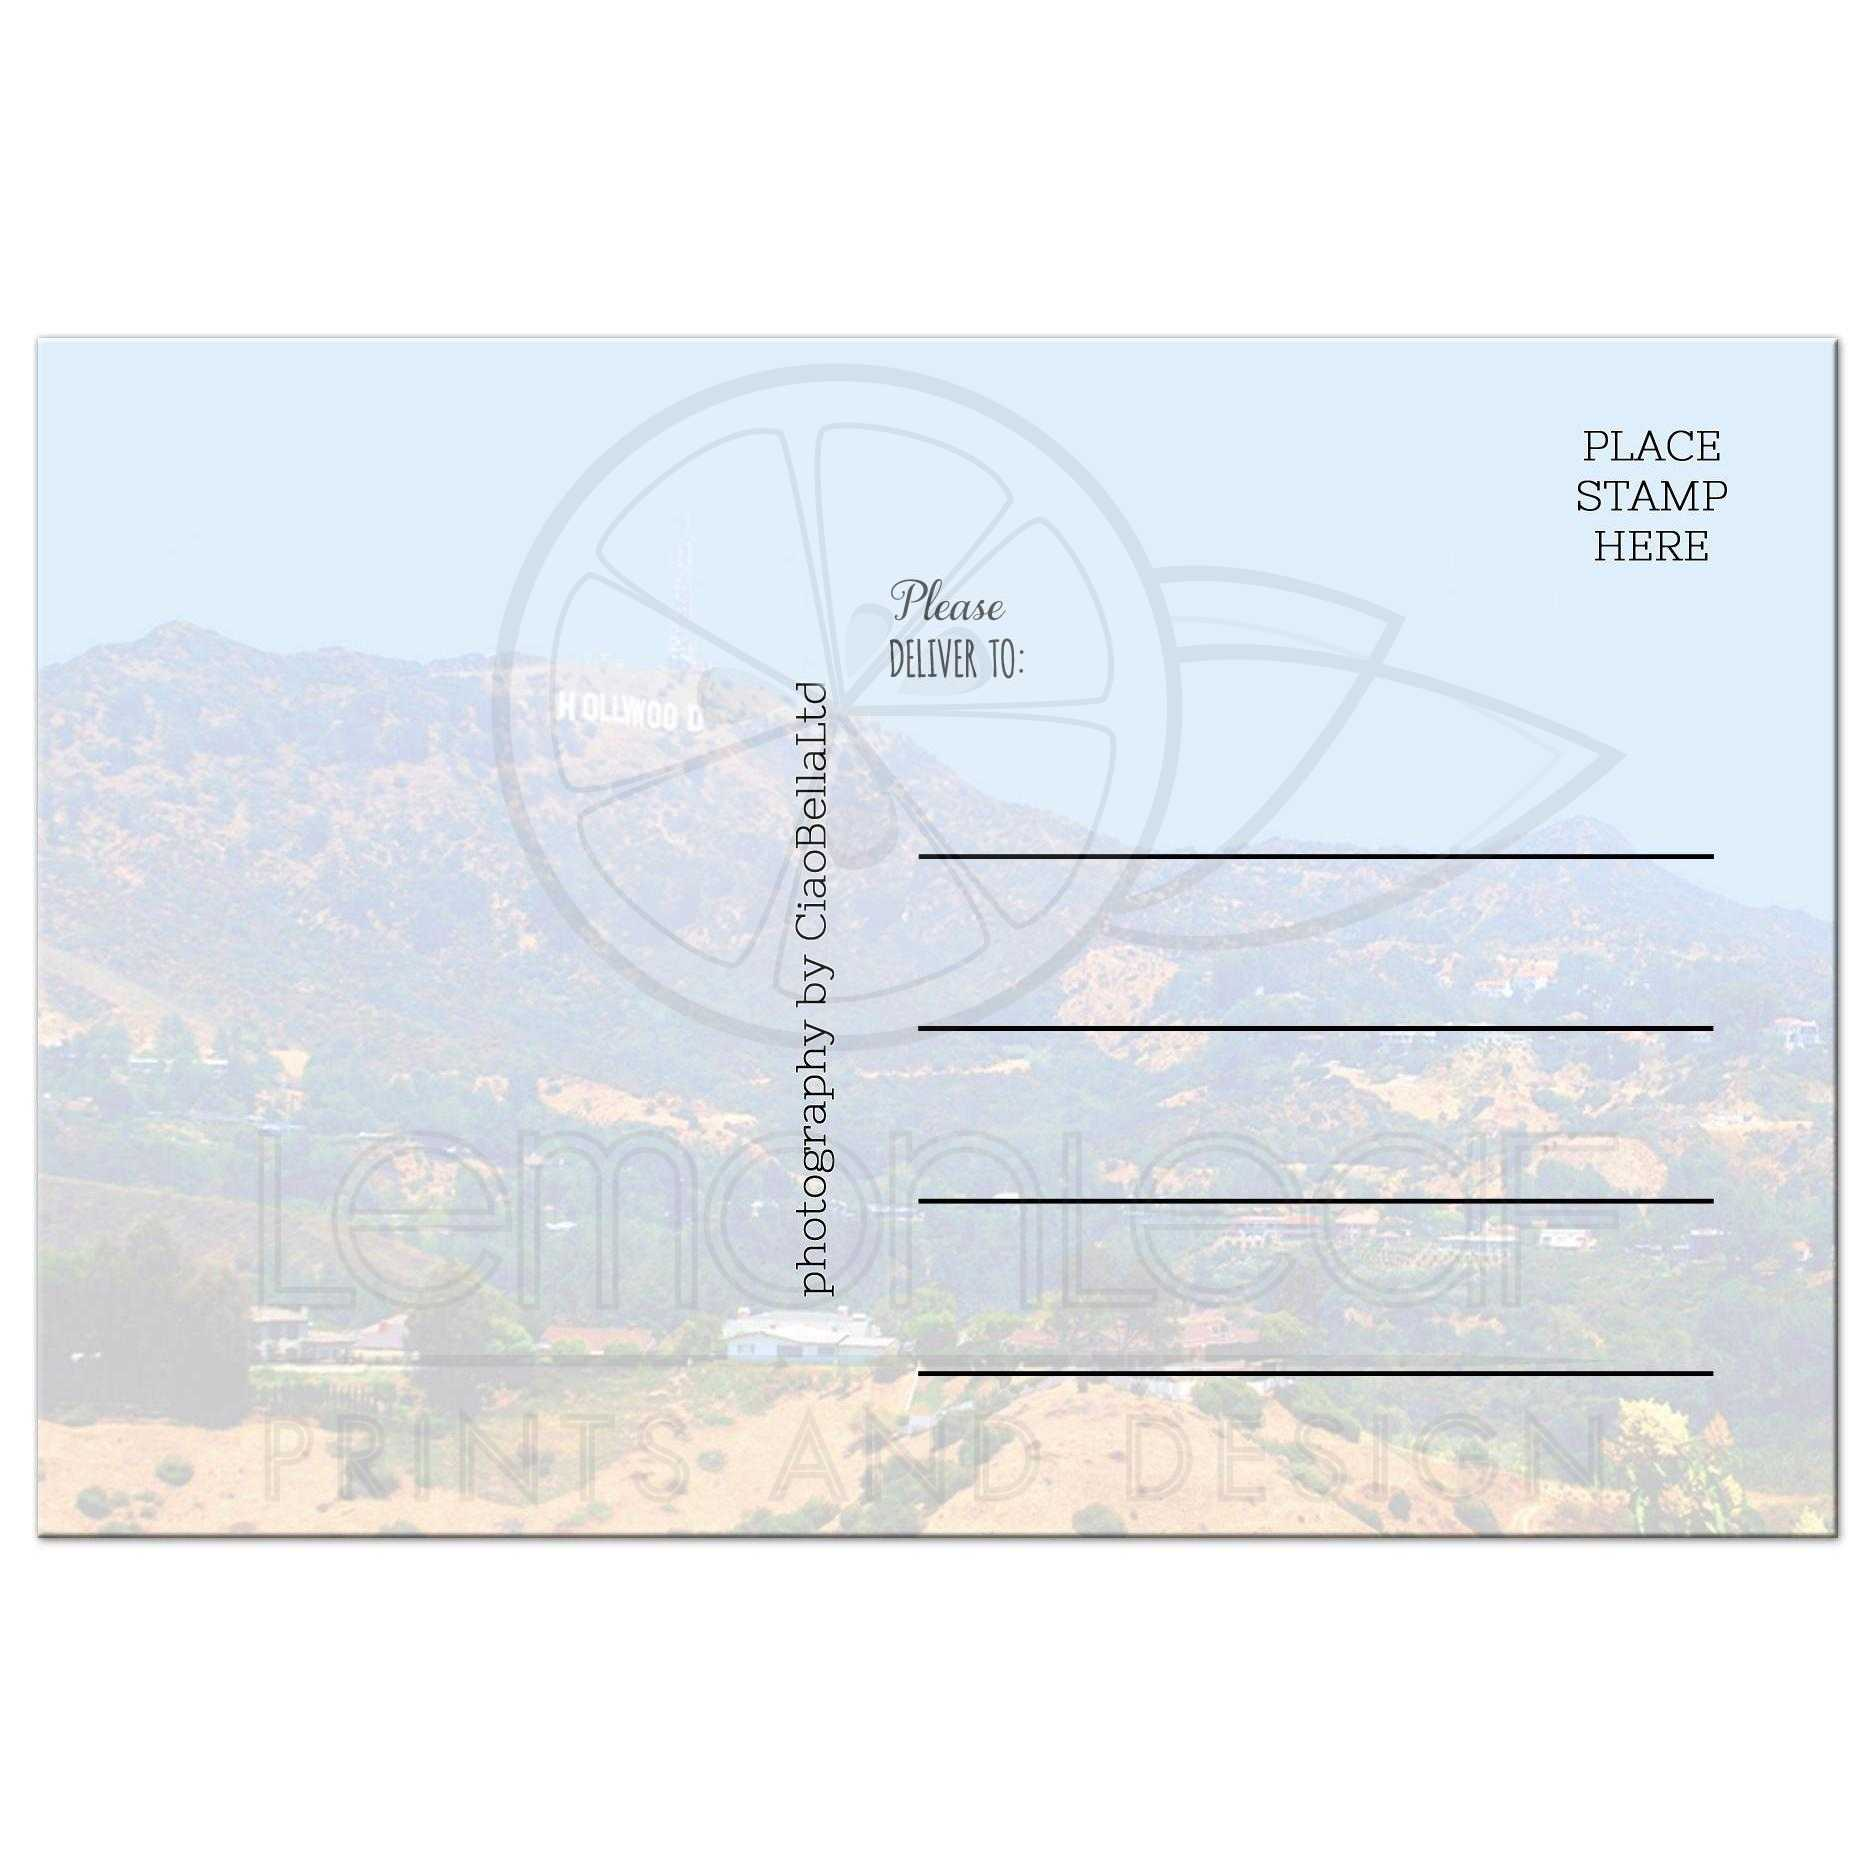 Historic Hollywood Sign Collectible Post Card